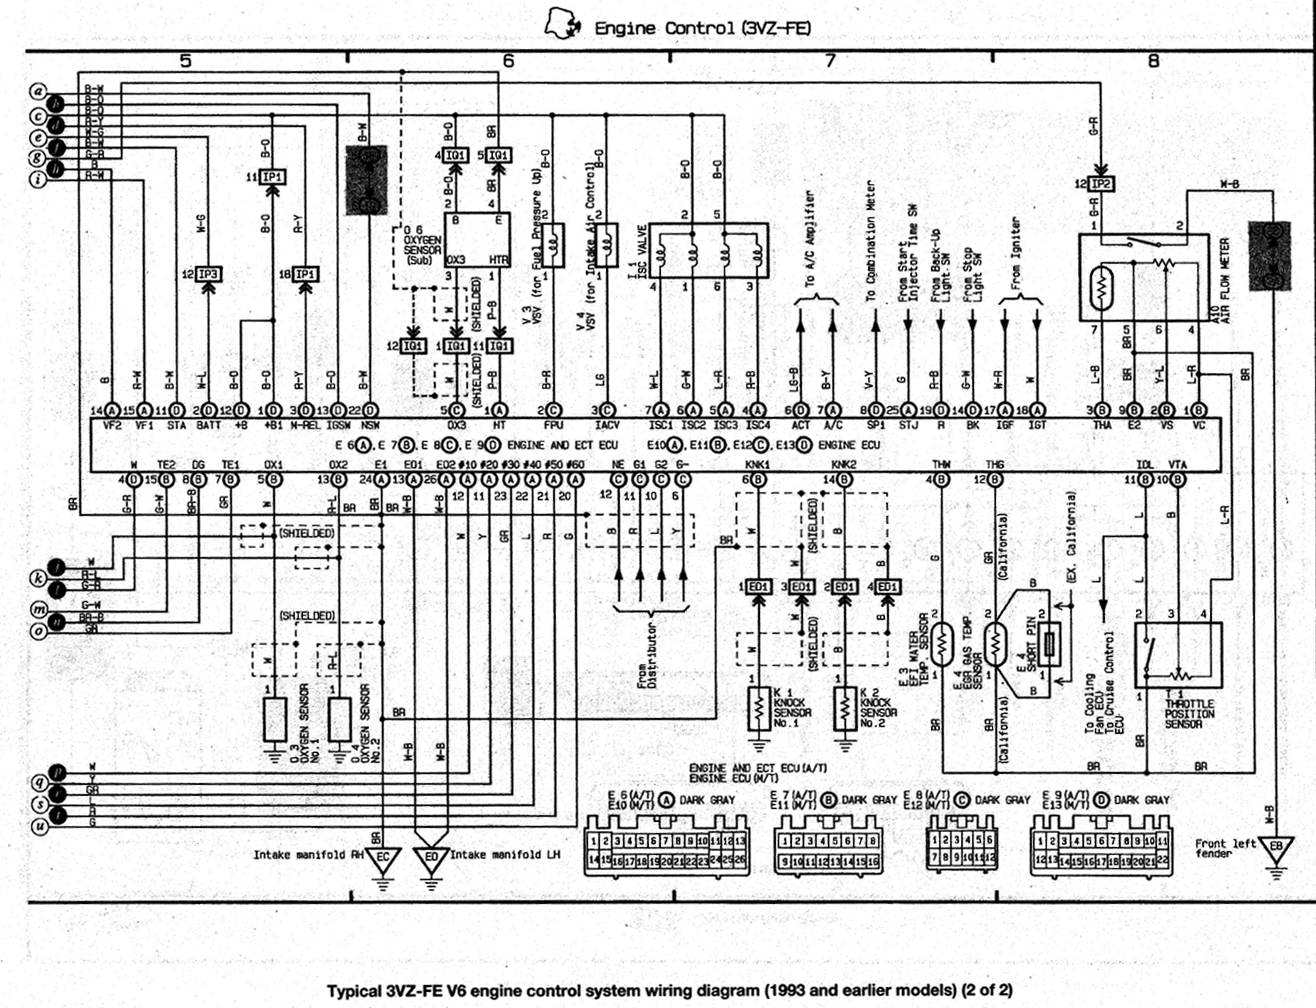 3vzfewiringdiagram02 3vz fe into 1973 rt 81 corona 2zz-ge wiring diagram at suagrazia.org